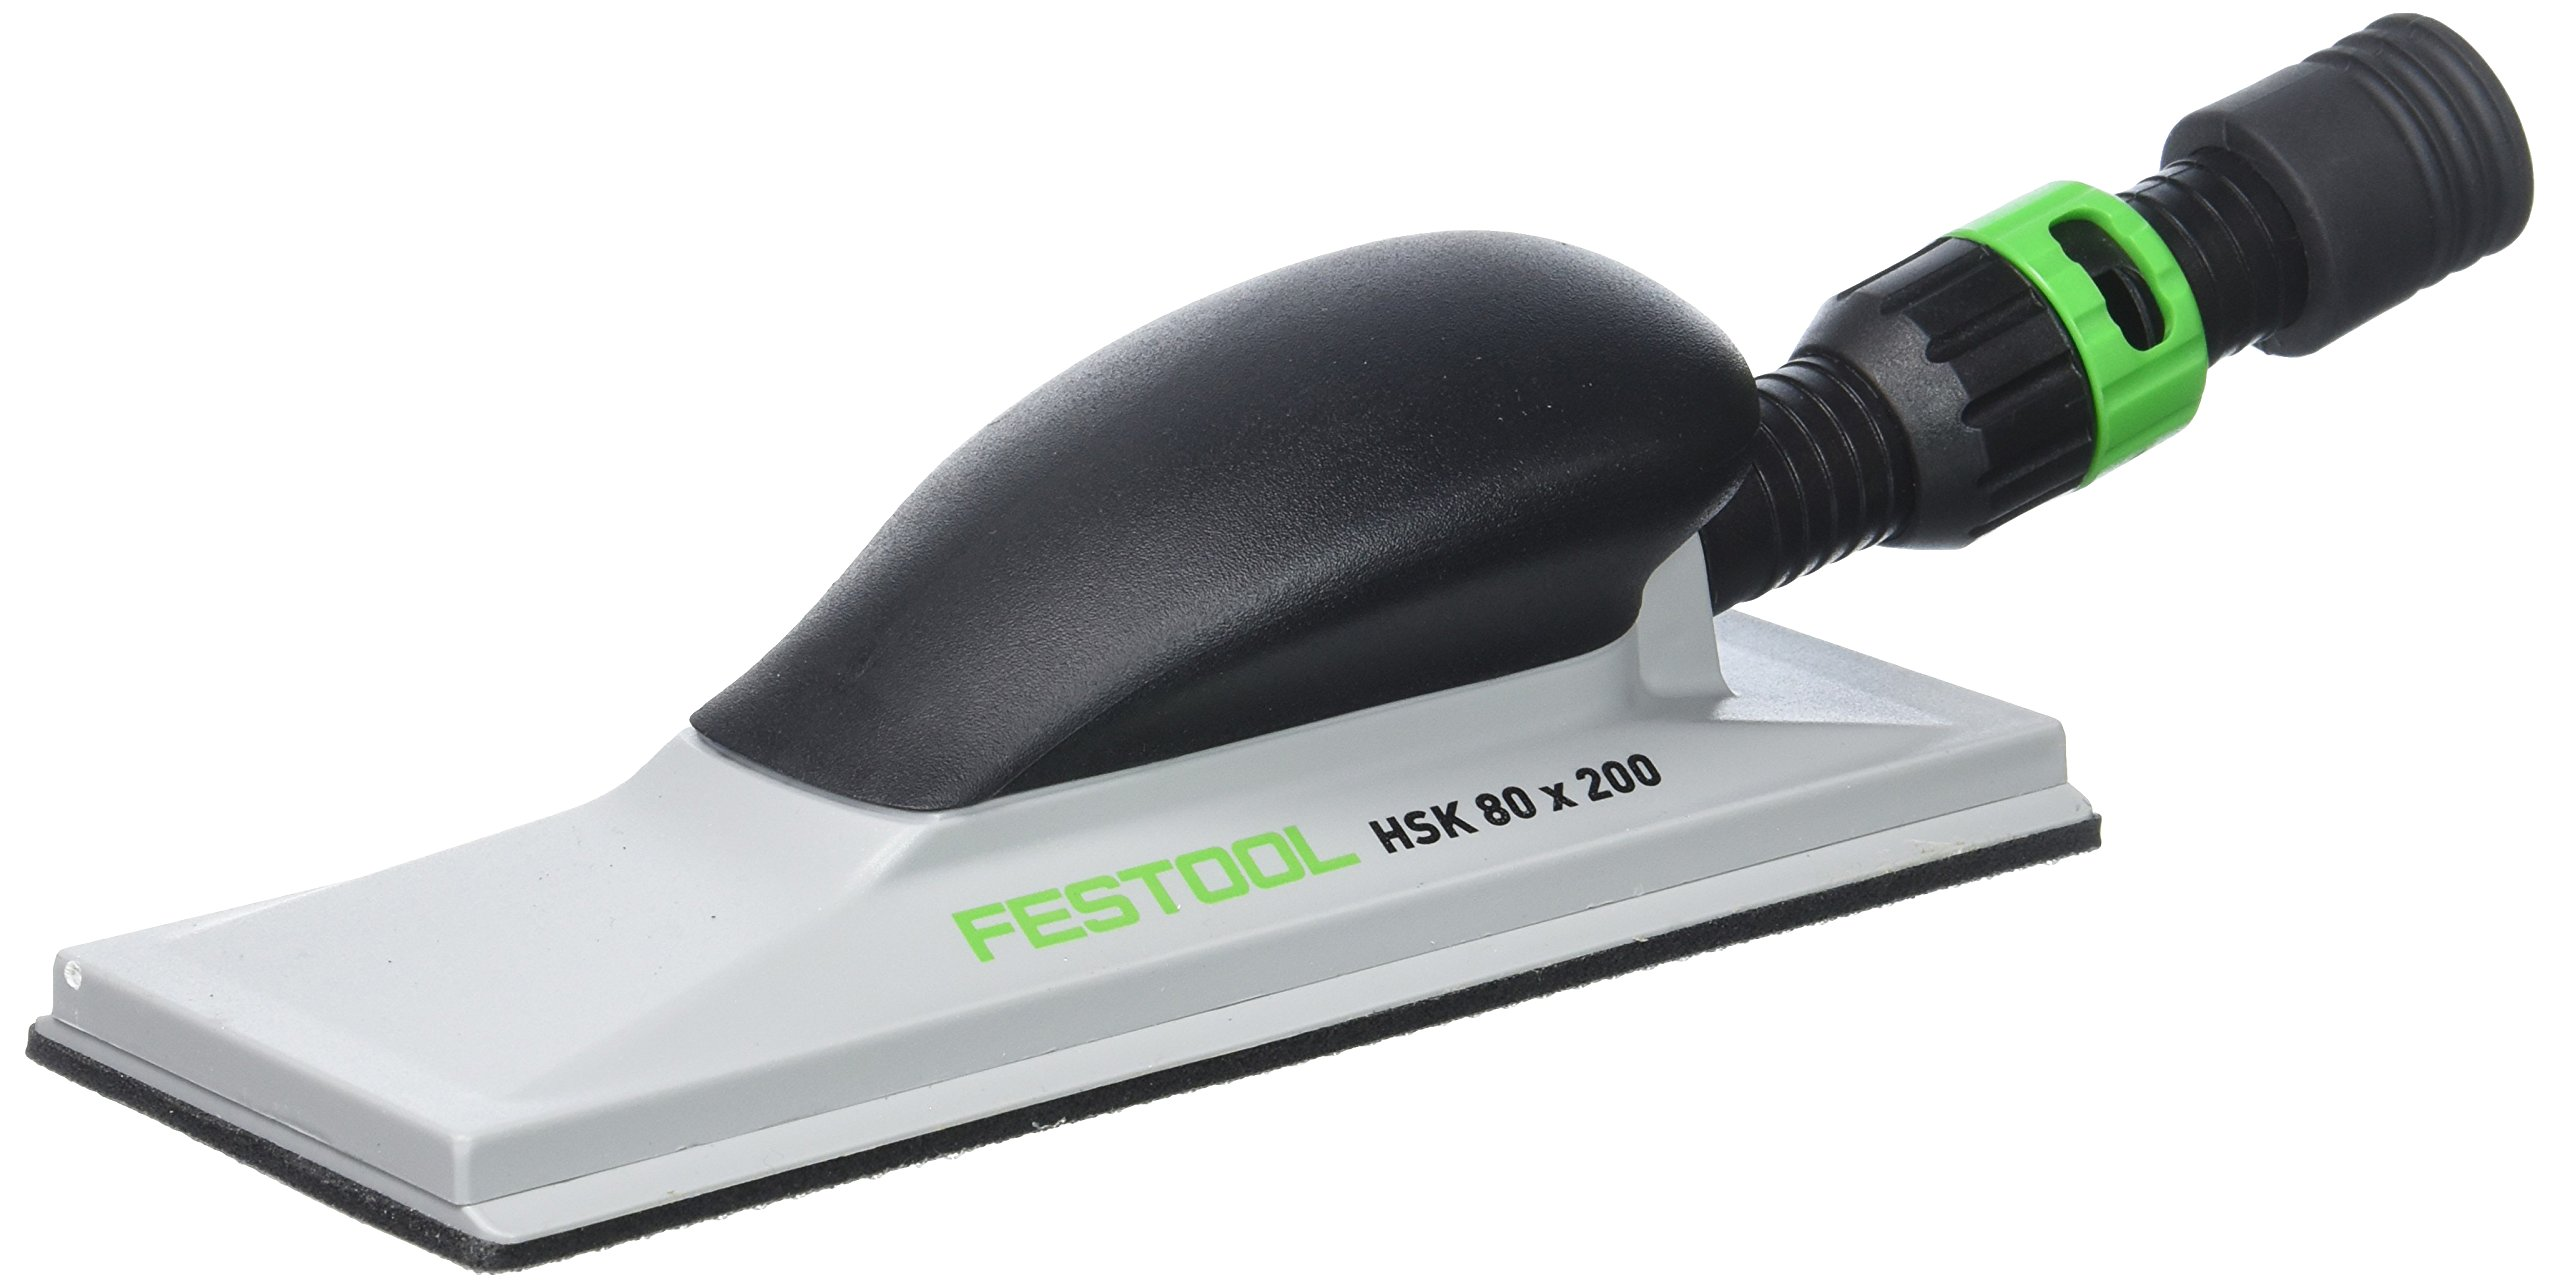 Festool 496965 80mm X 200mm Hand Sanding Block